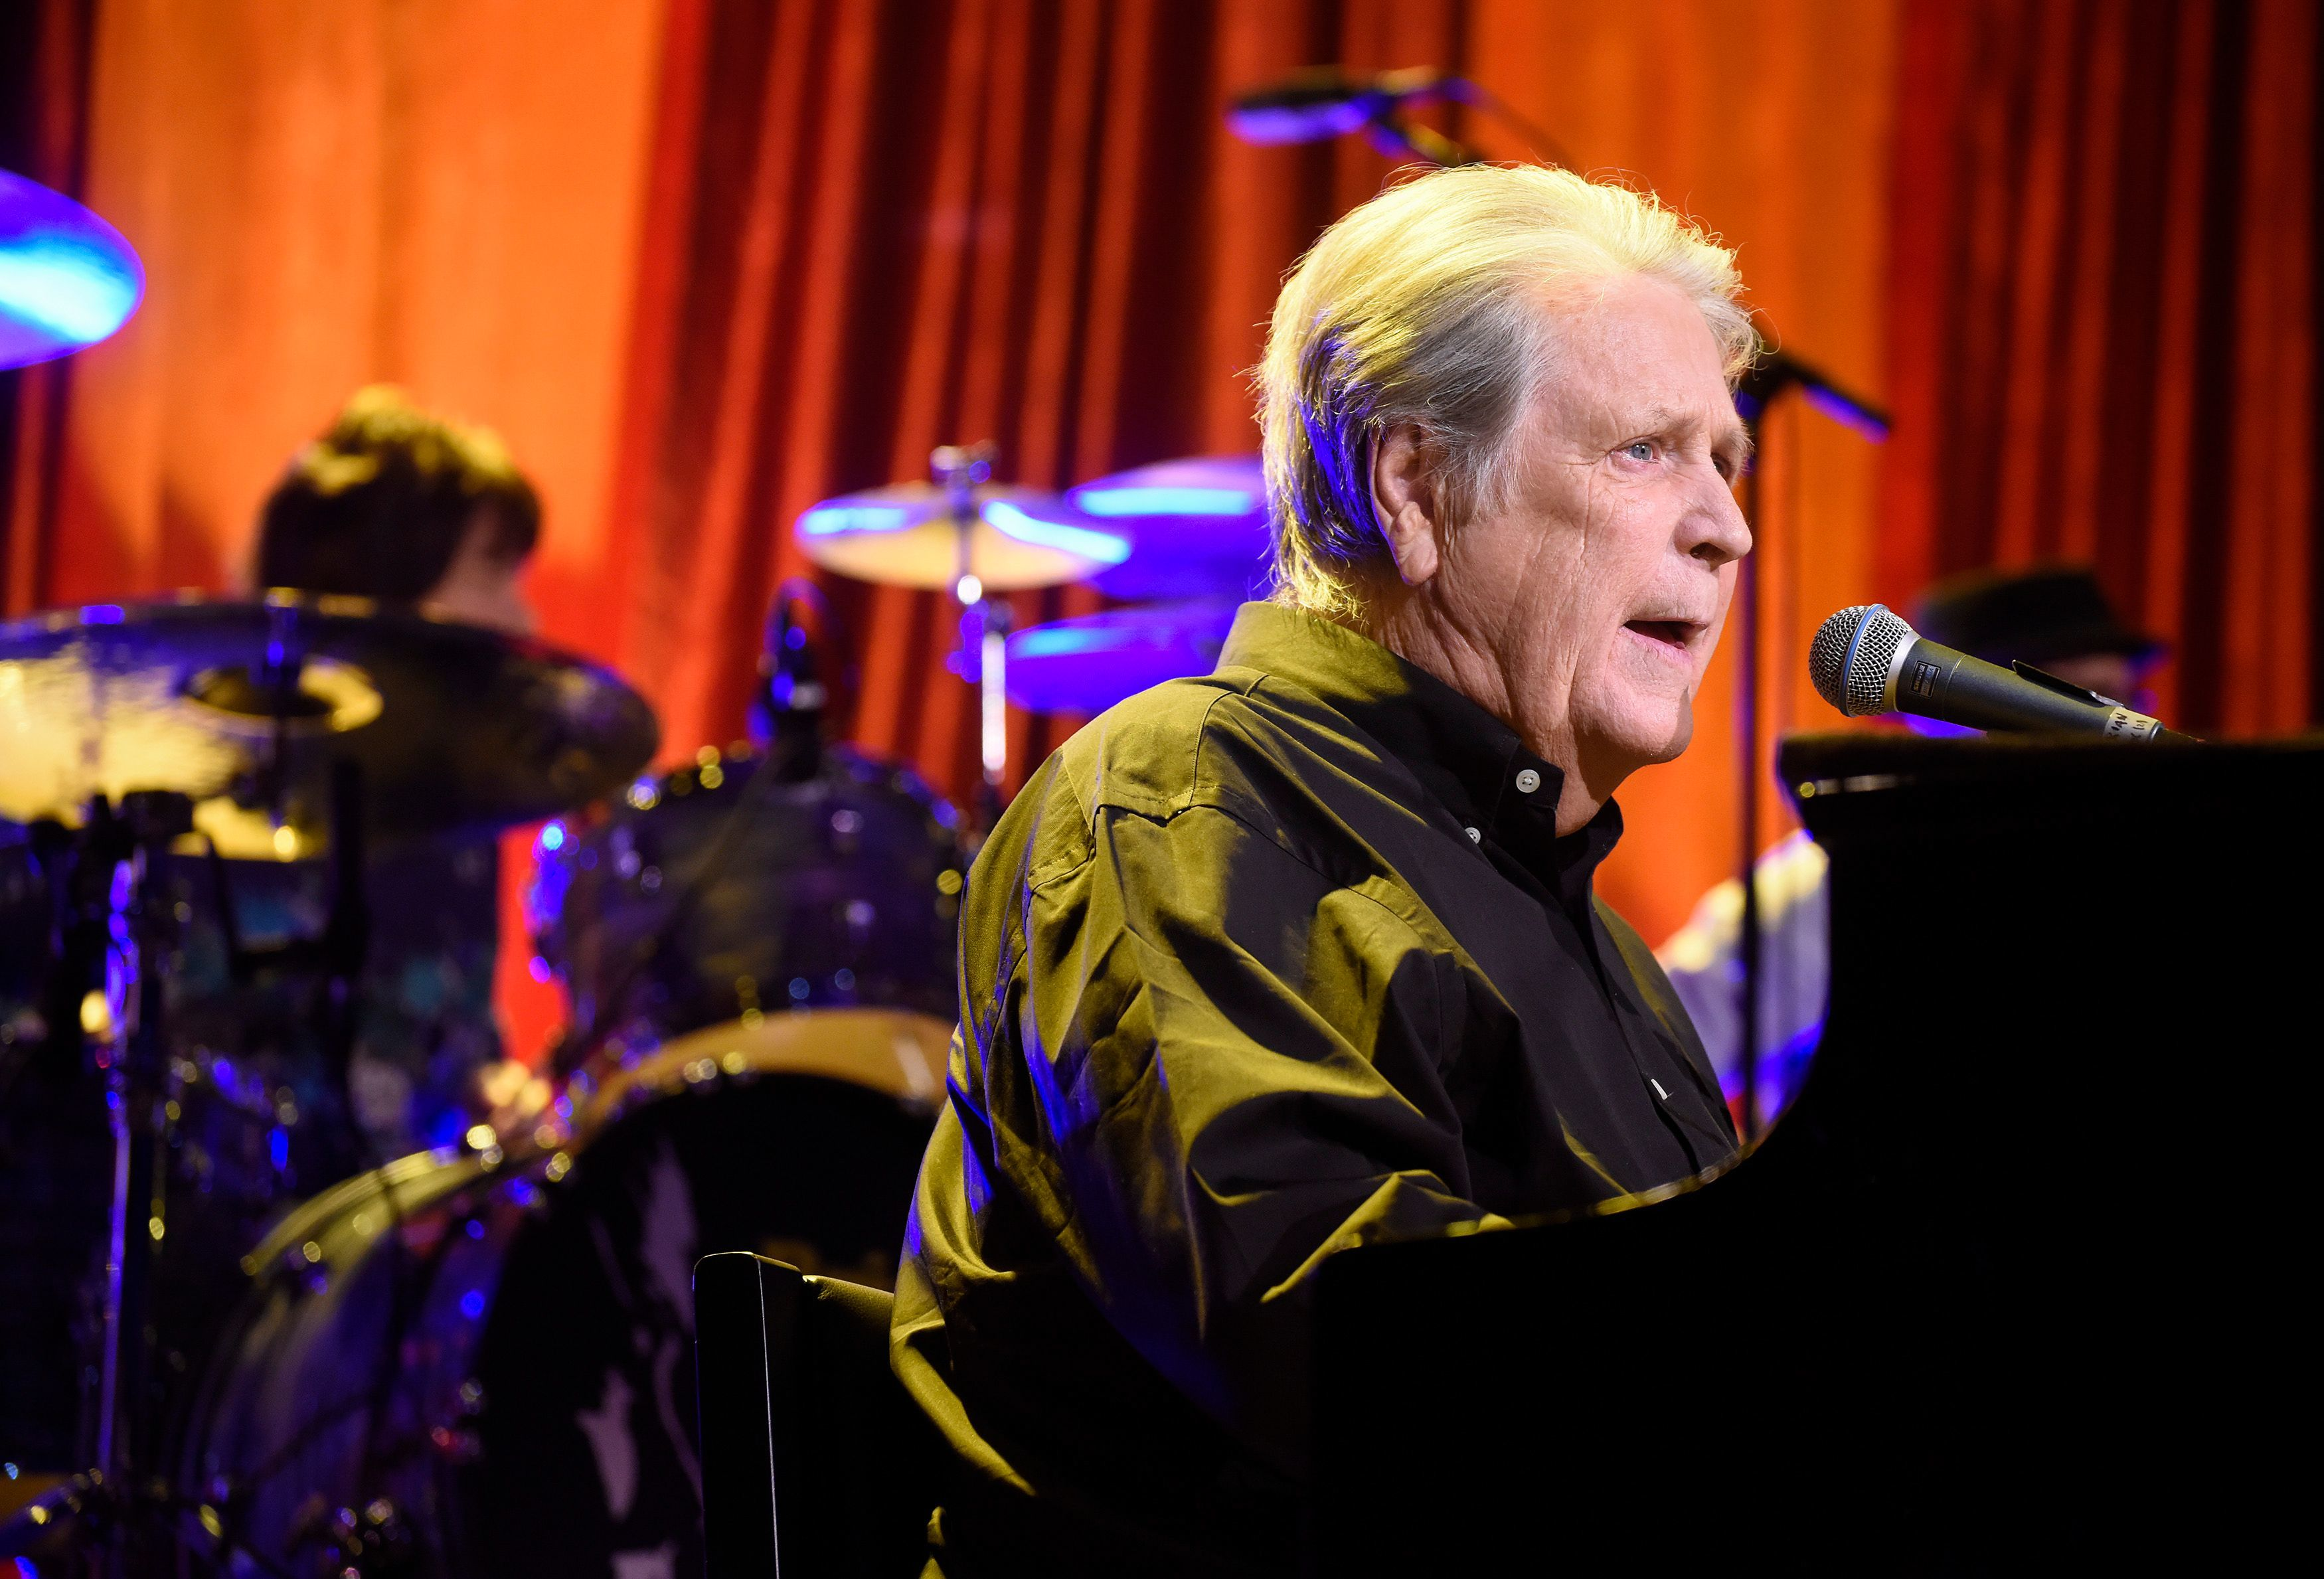 The Beach Boys' Brian Wilson plays the Ryman Auditorium in Nashville on Sept. 16, 2016.